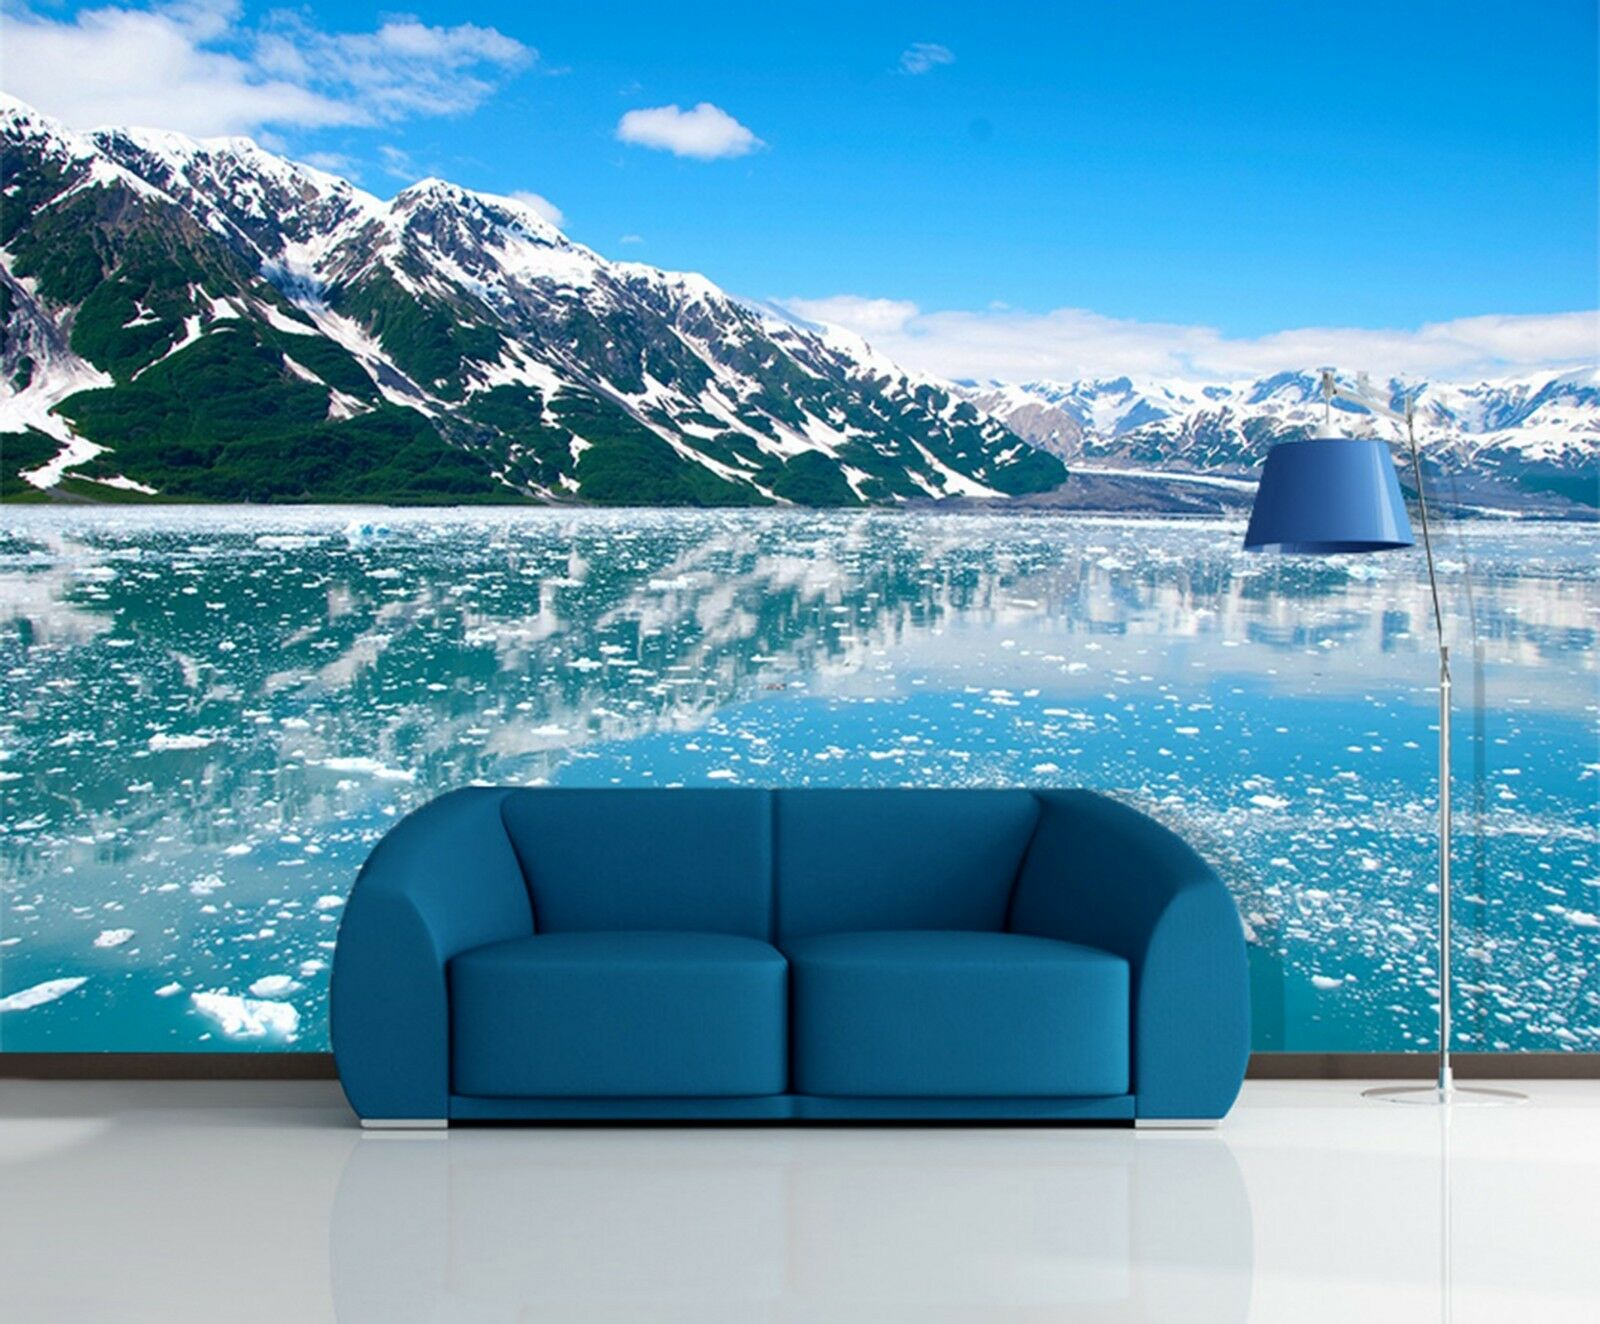 3D Snow Mountain lake Wall Paper wall Print Decal Wall Deco Indoor wall Mural